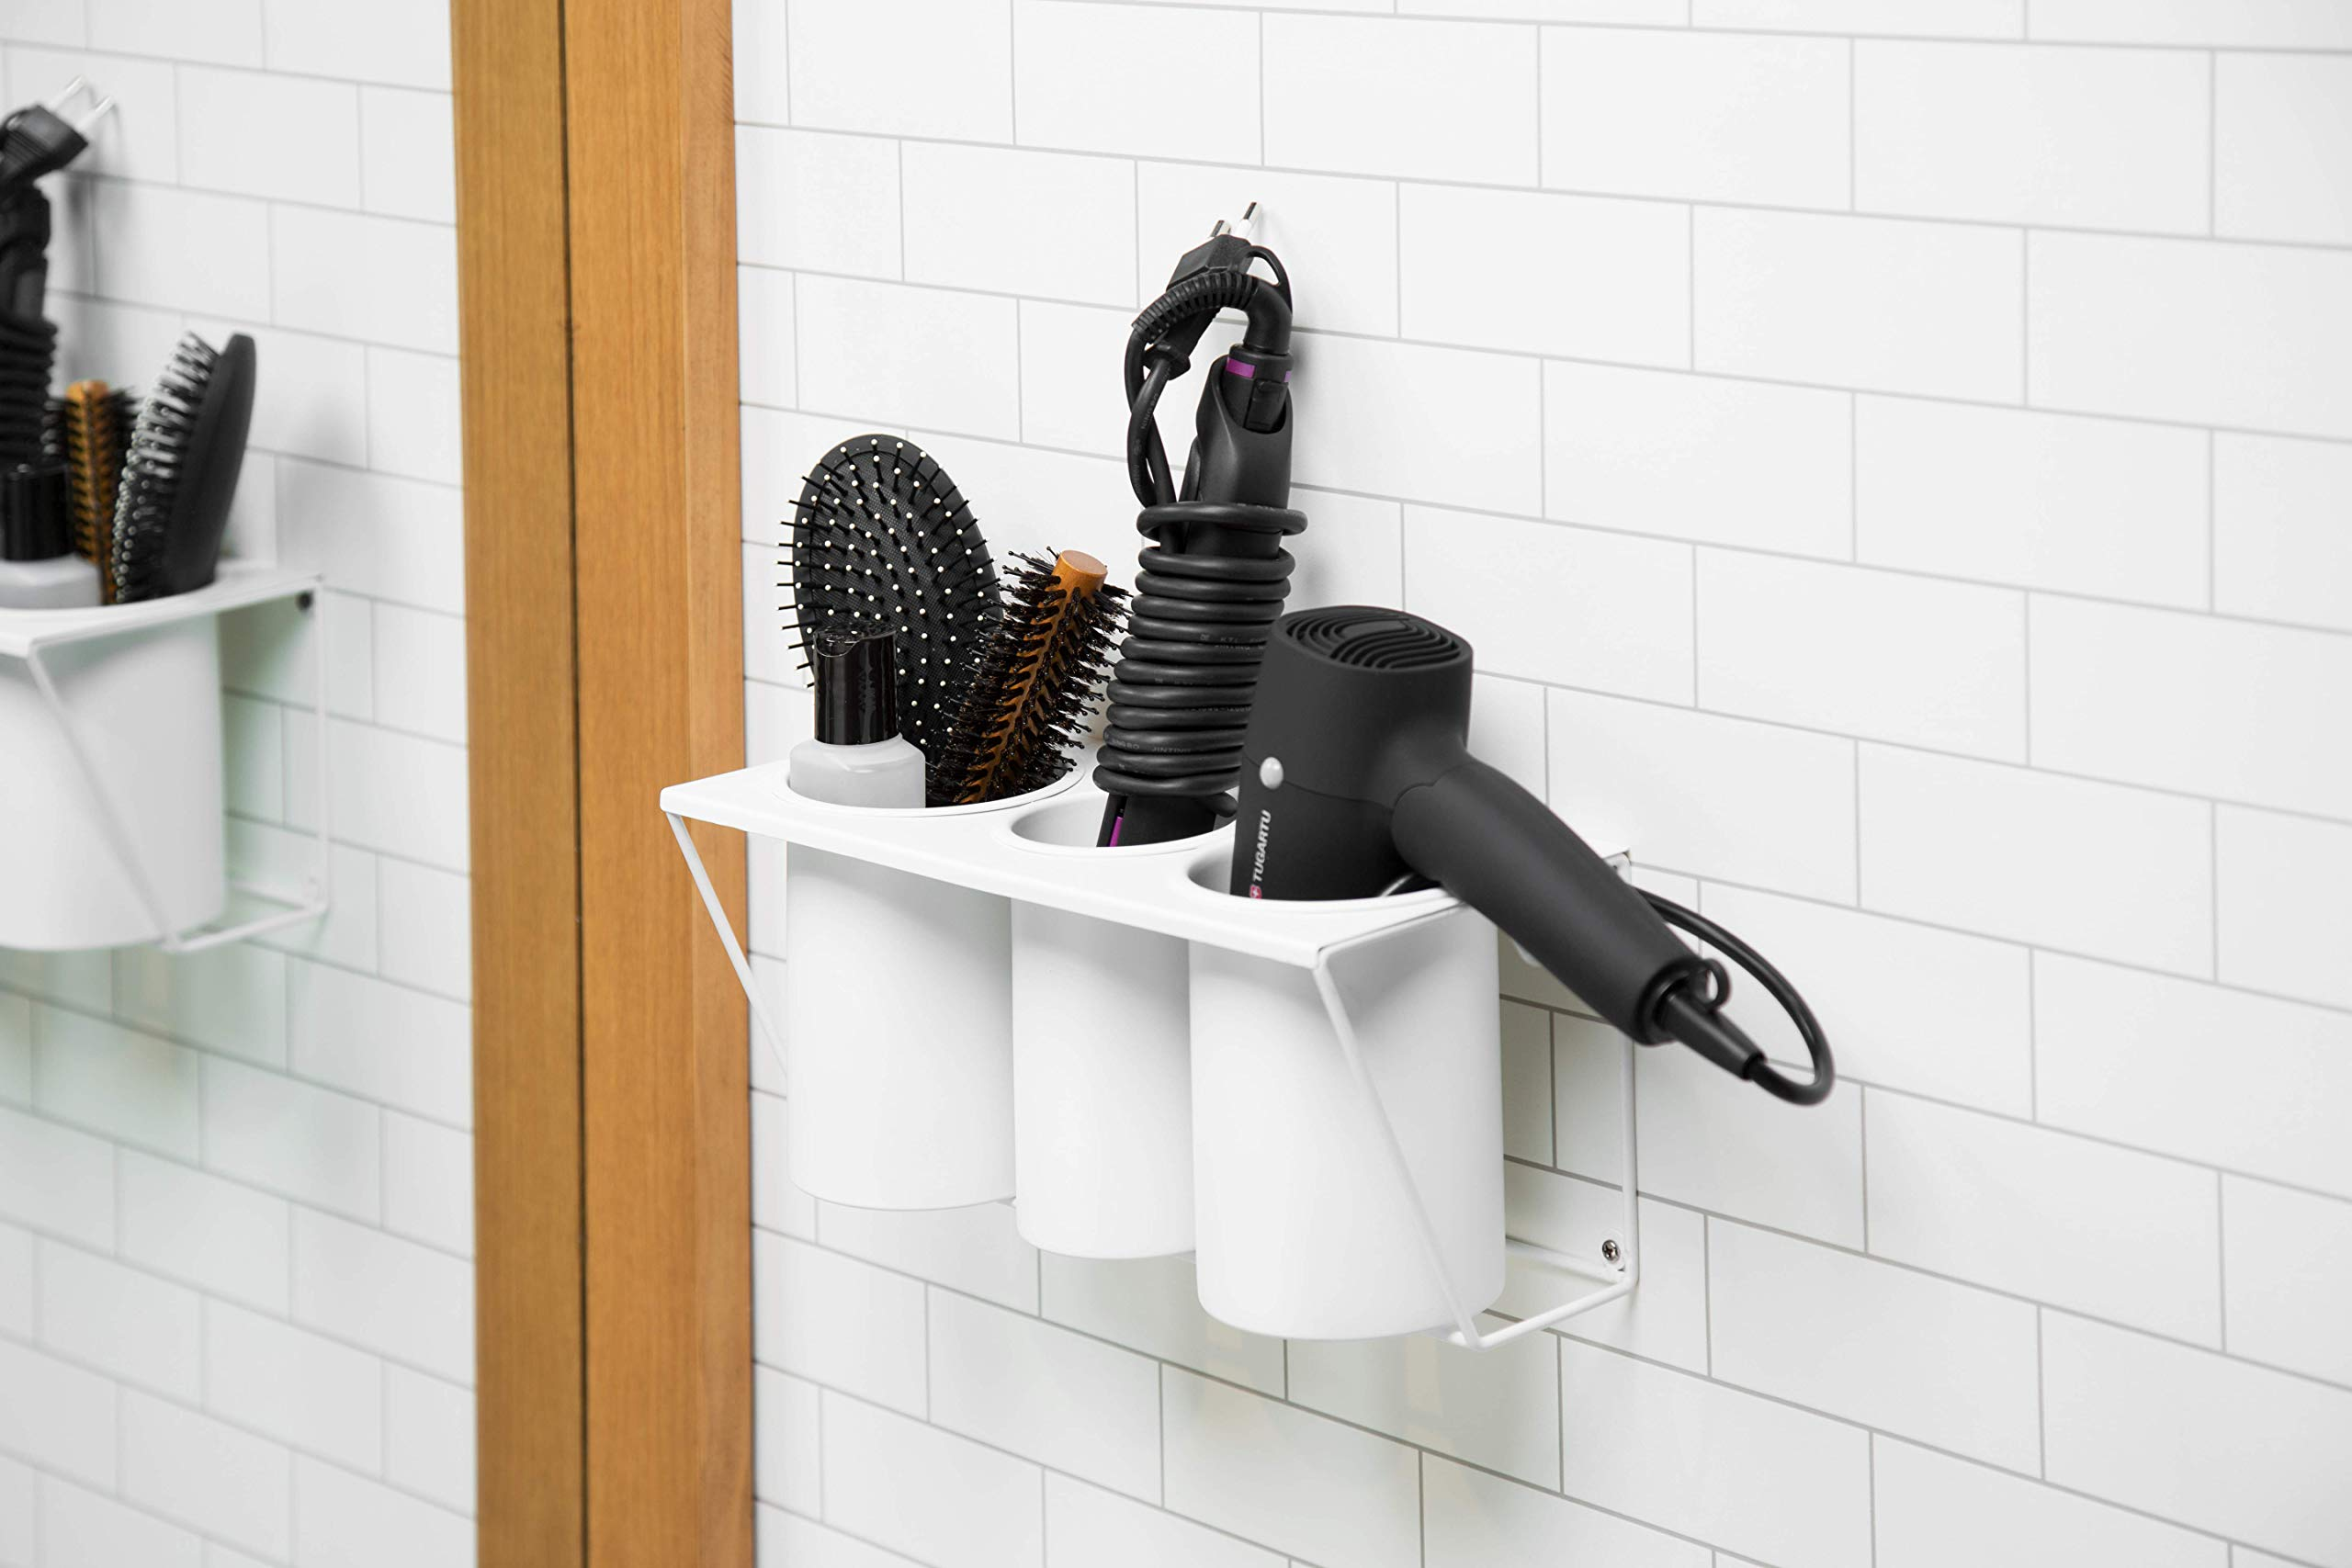 JackCubeDesign Hair Dryer Holder Hair Styling Product Care Tool Organizer Bath Supplies Accessories Tray Stand Storage Bathroom Steel Hair Dryer Holder(White) MK470A